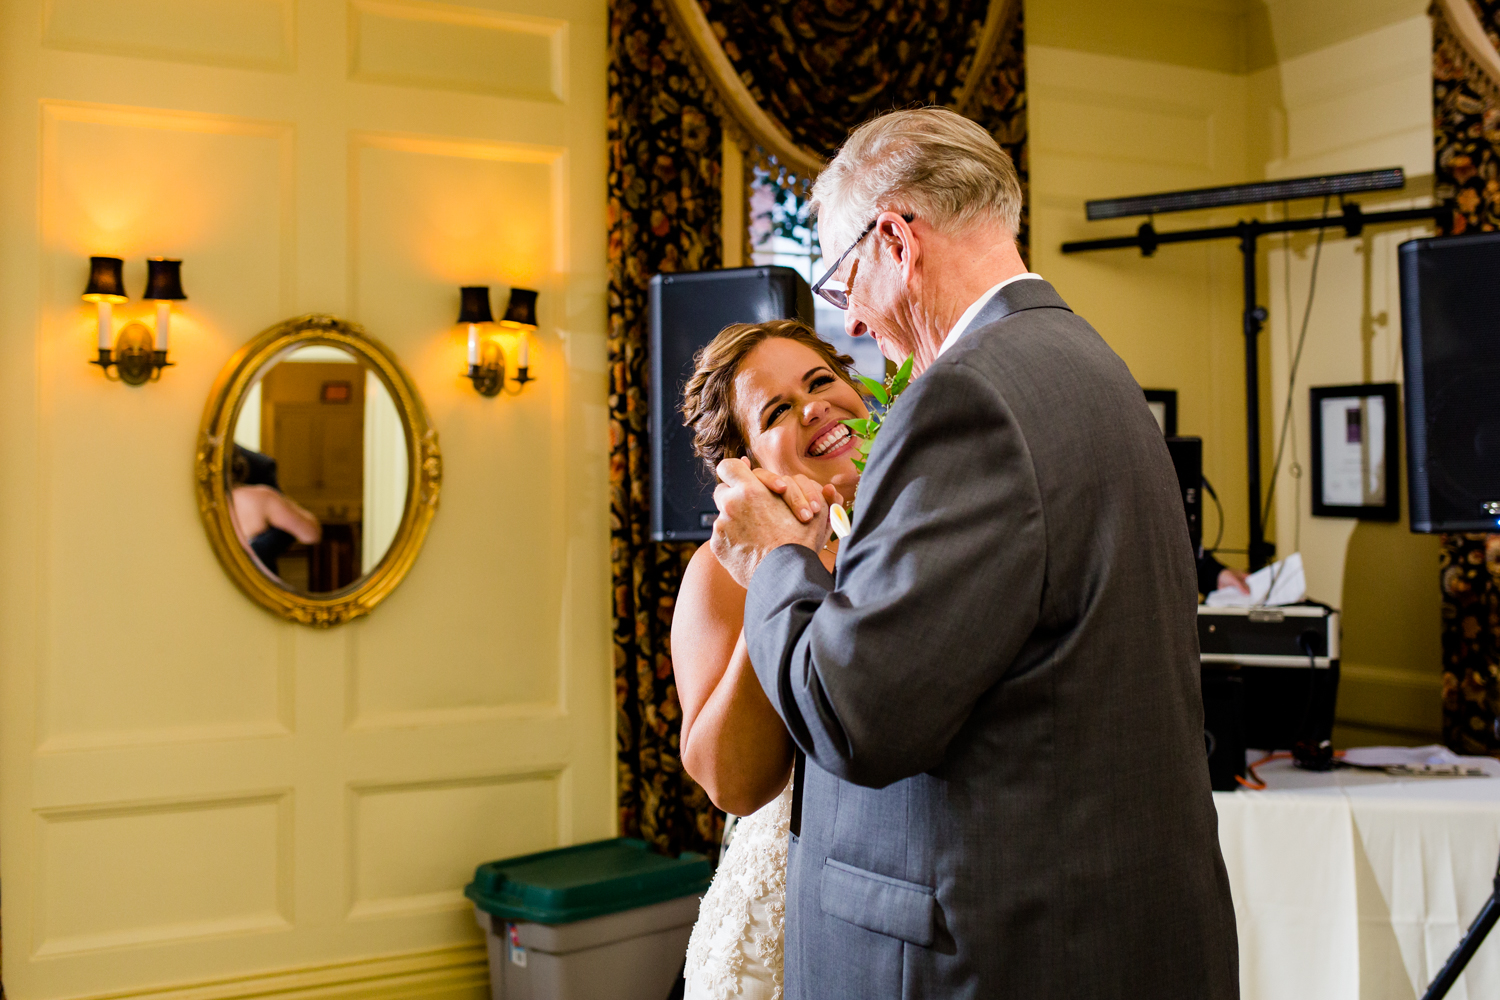 Bride smiles during father daughter dance.